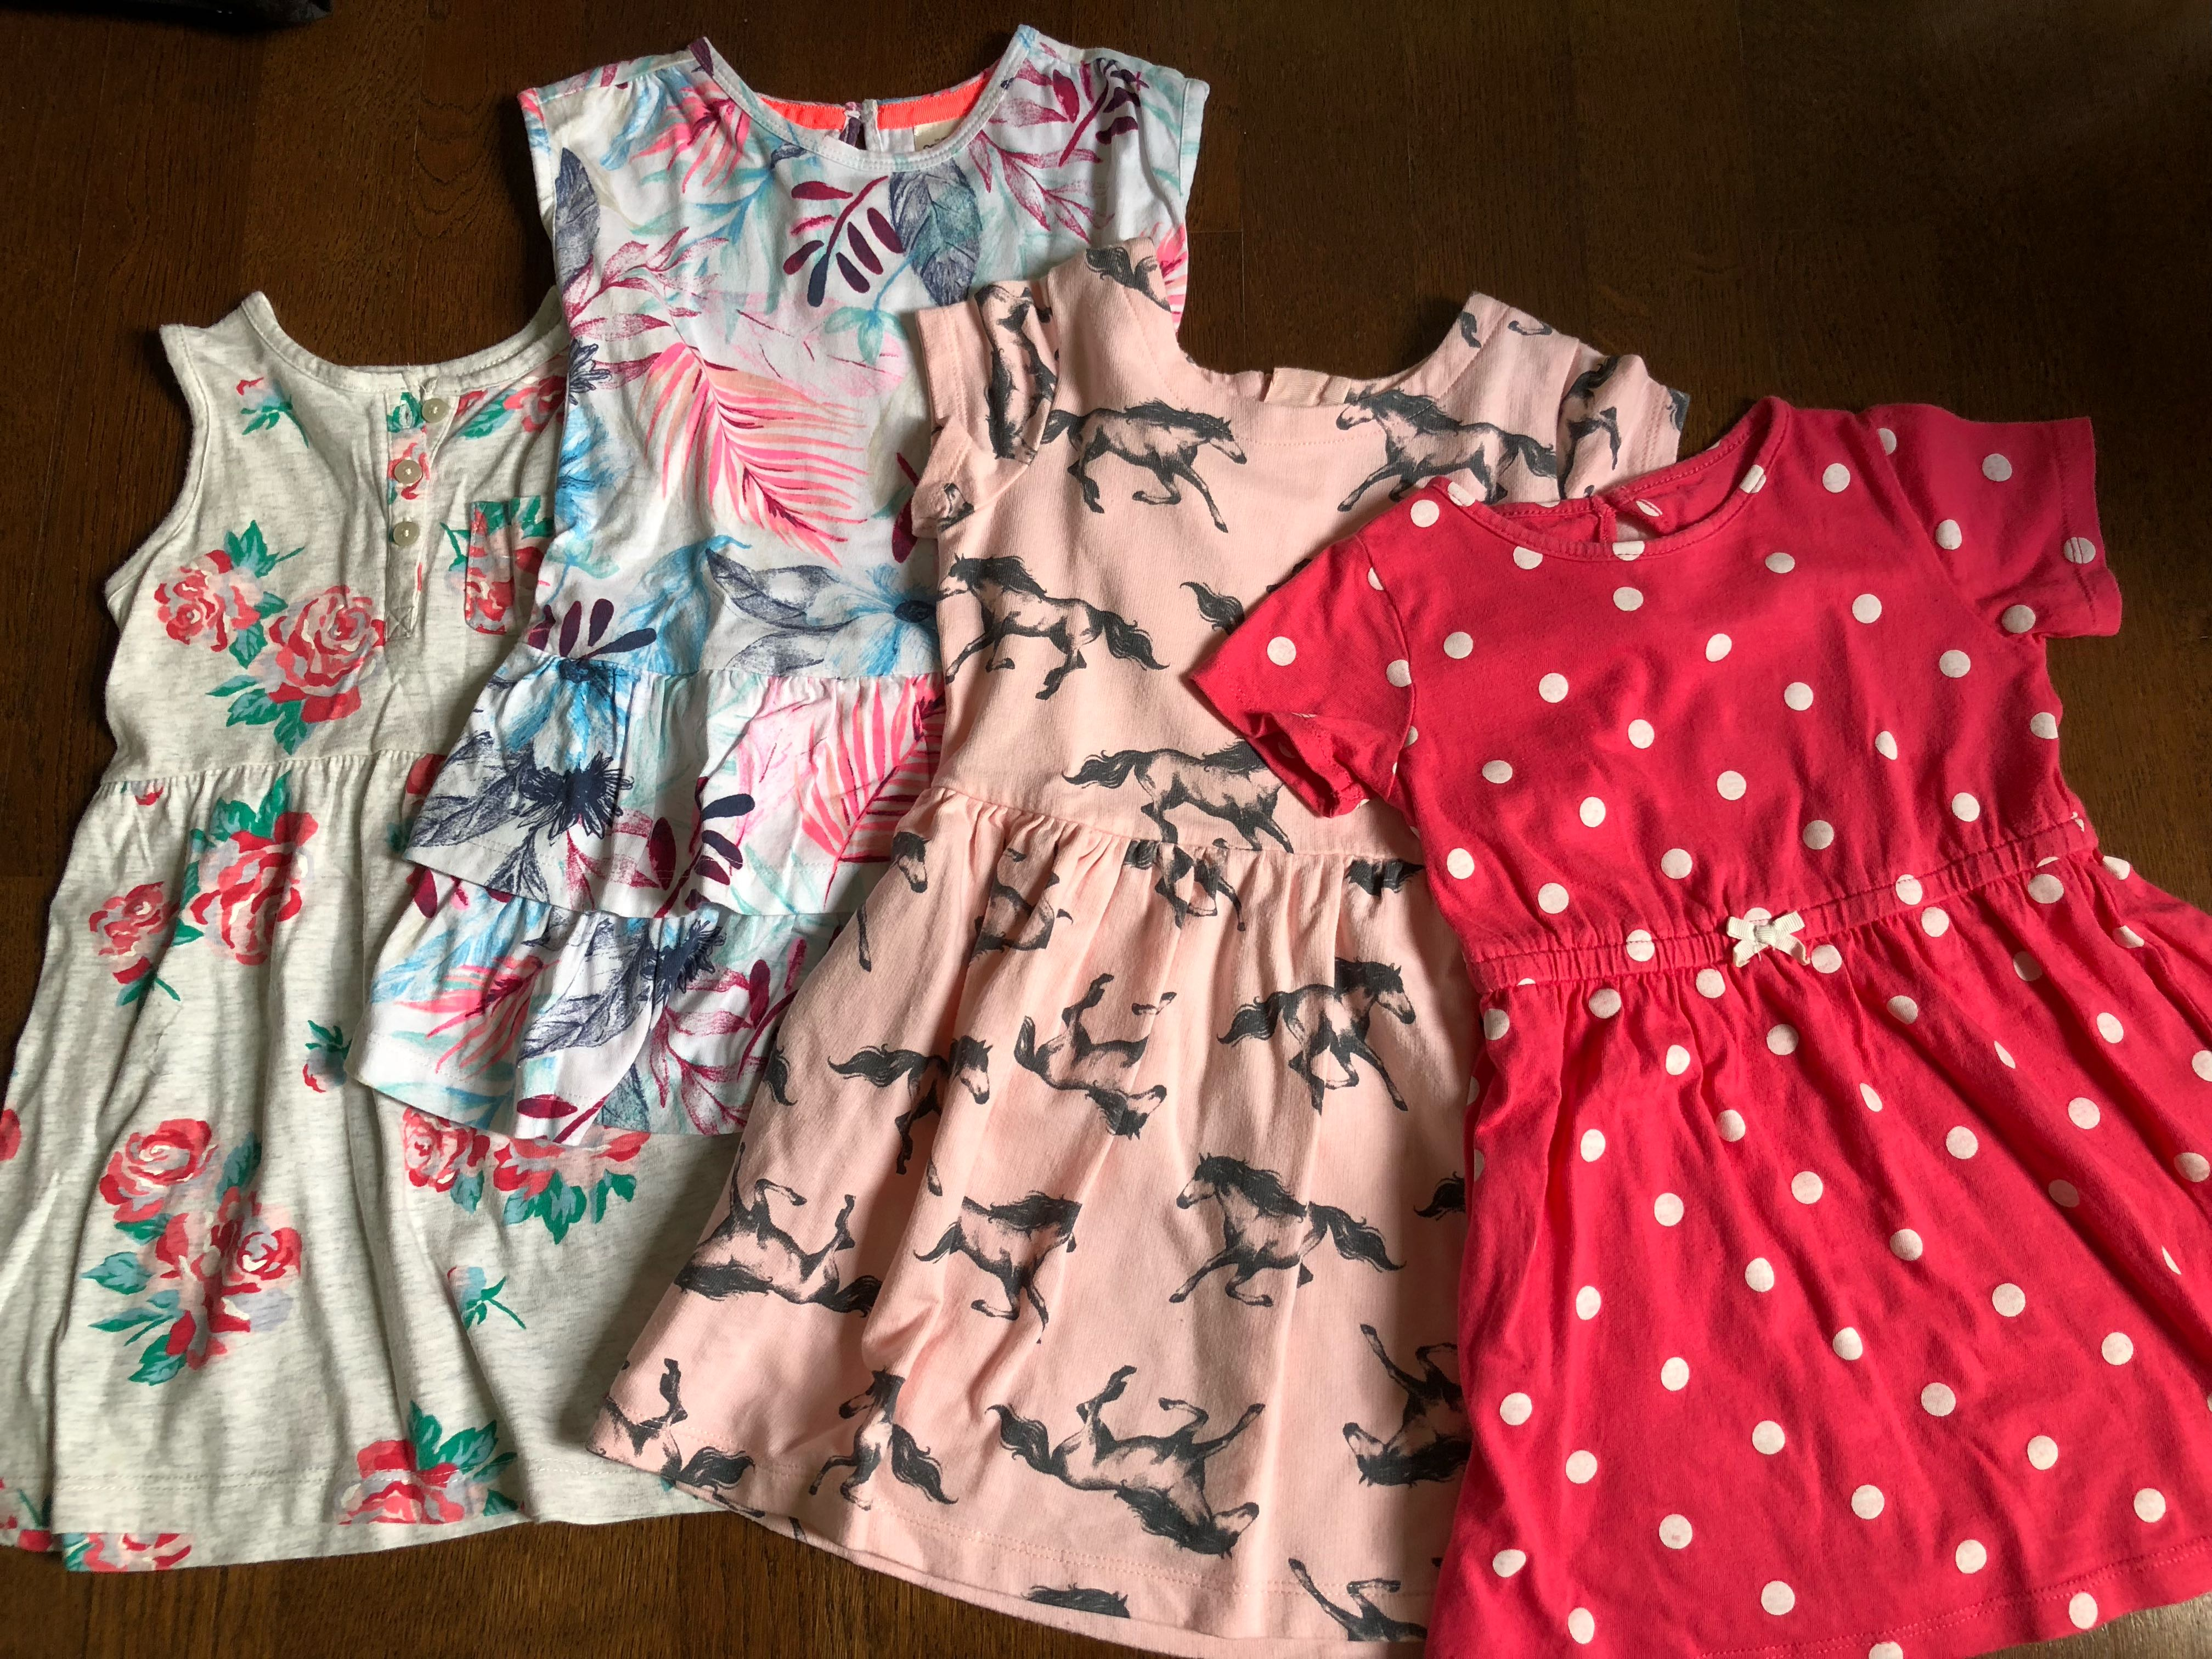 042b49818 Carter's and Osh kosh Girls Dresses (2T), Babies & Kids, Girls ...